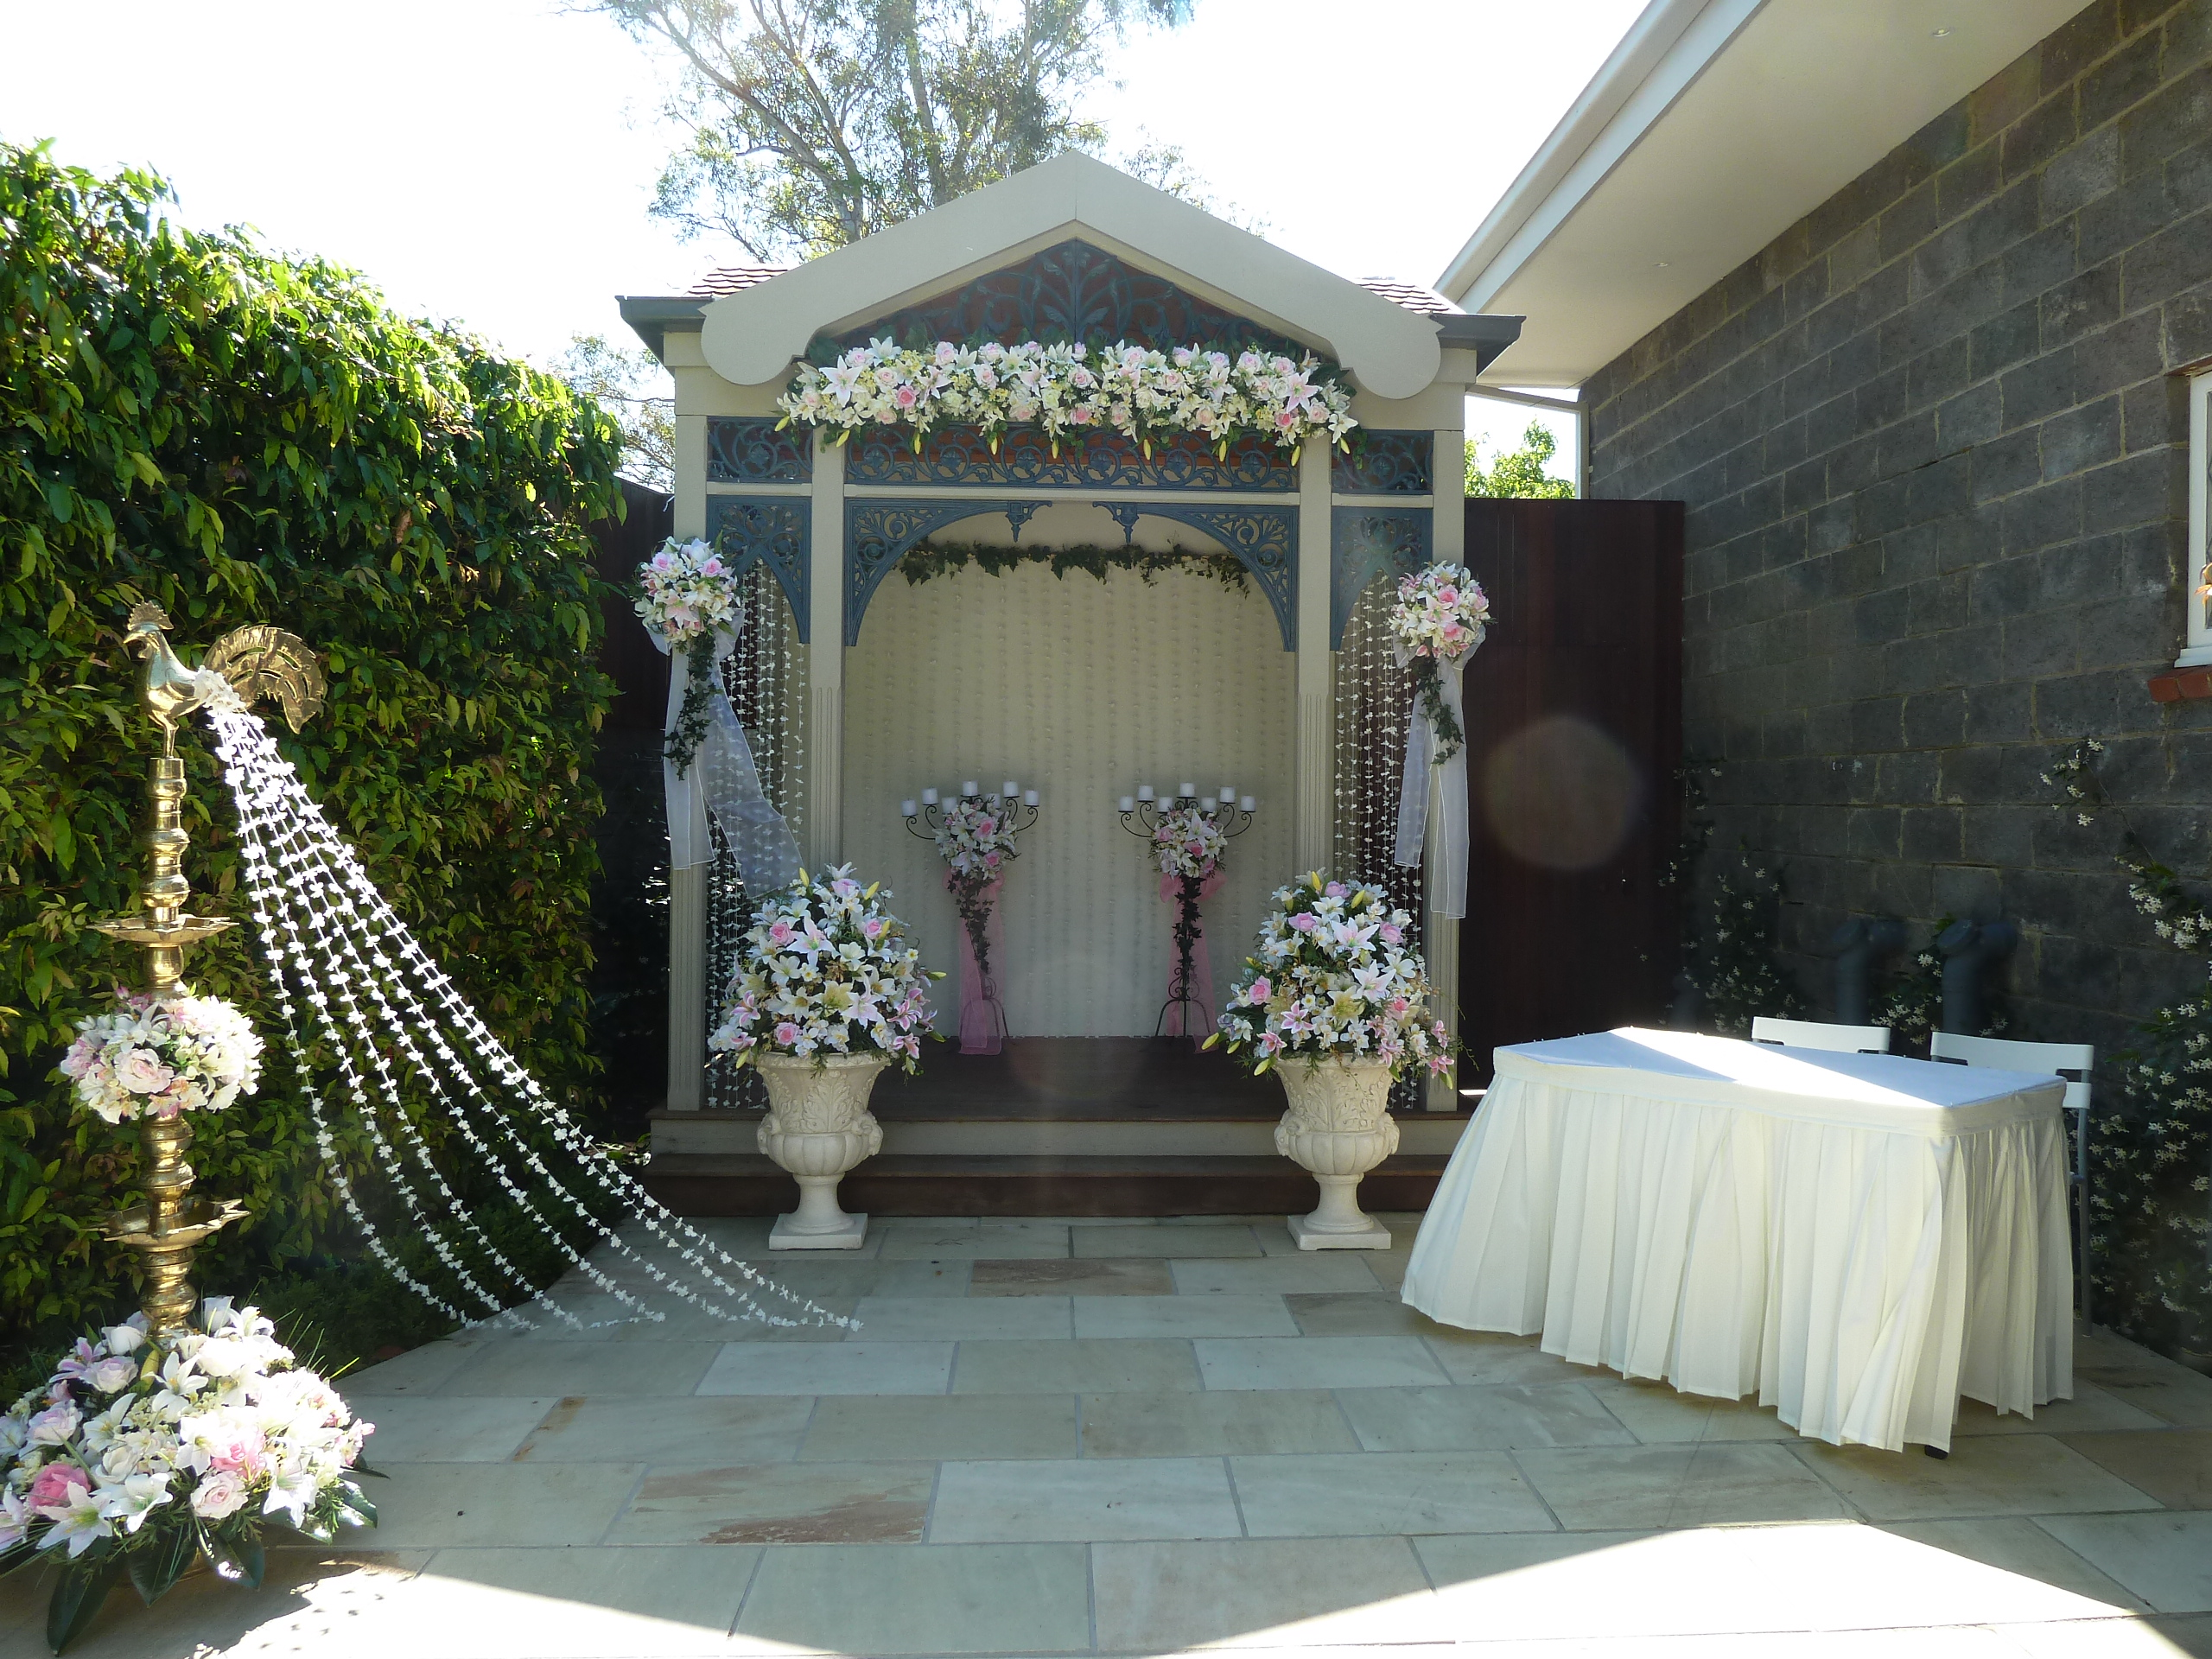 Gazebo Wedding Ceremony Decor  Glamorous Function Decor